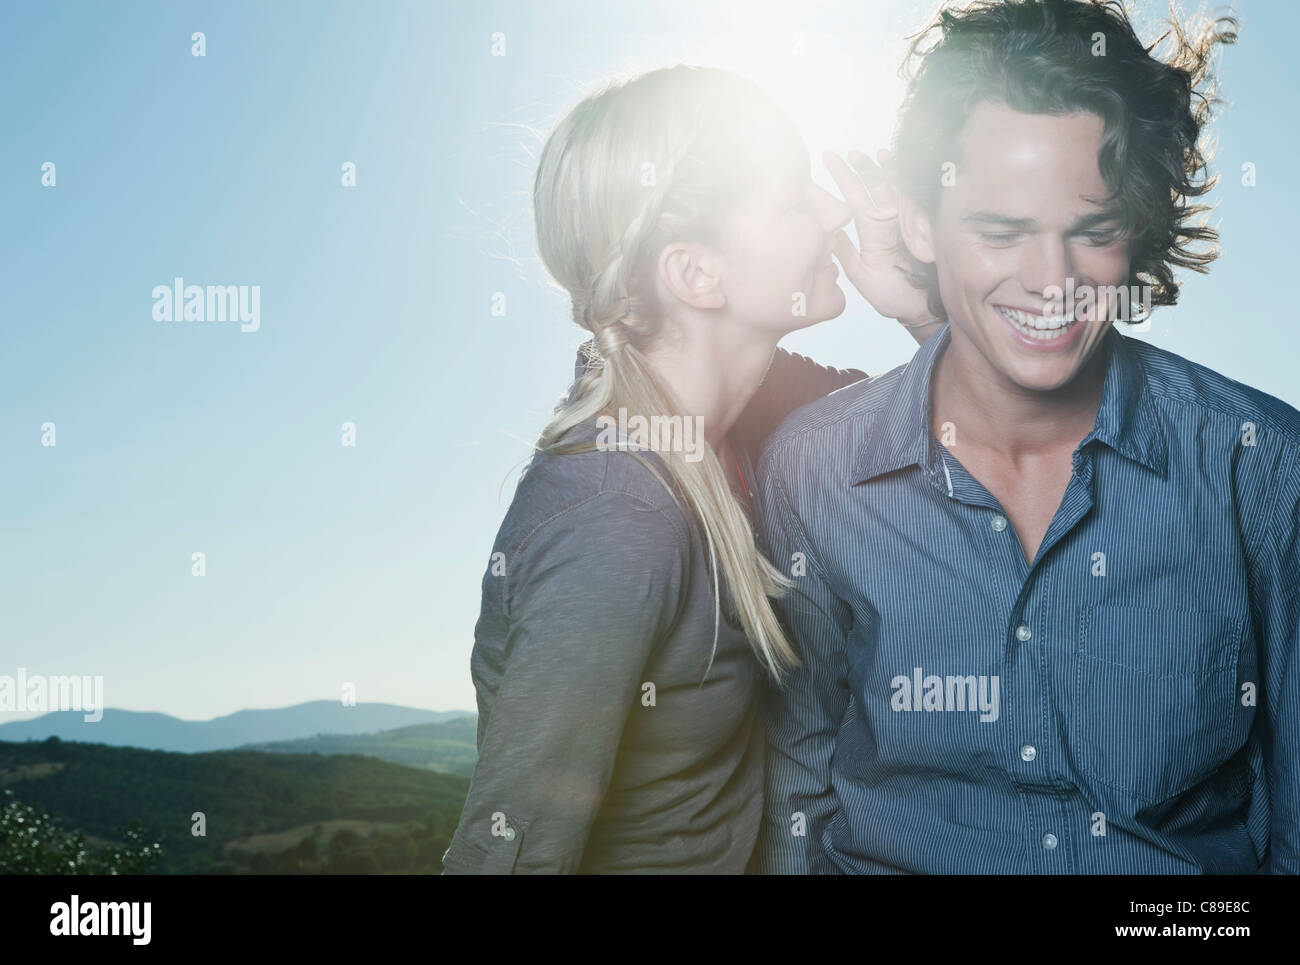 Italy, Tuscany, Young woman whispering in man's ear against sun - Stock Image